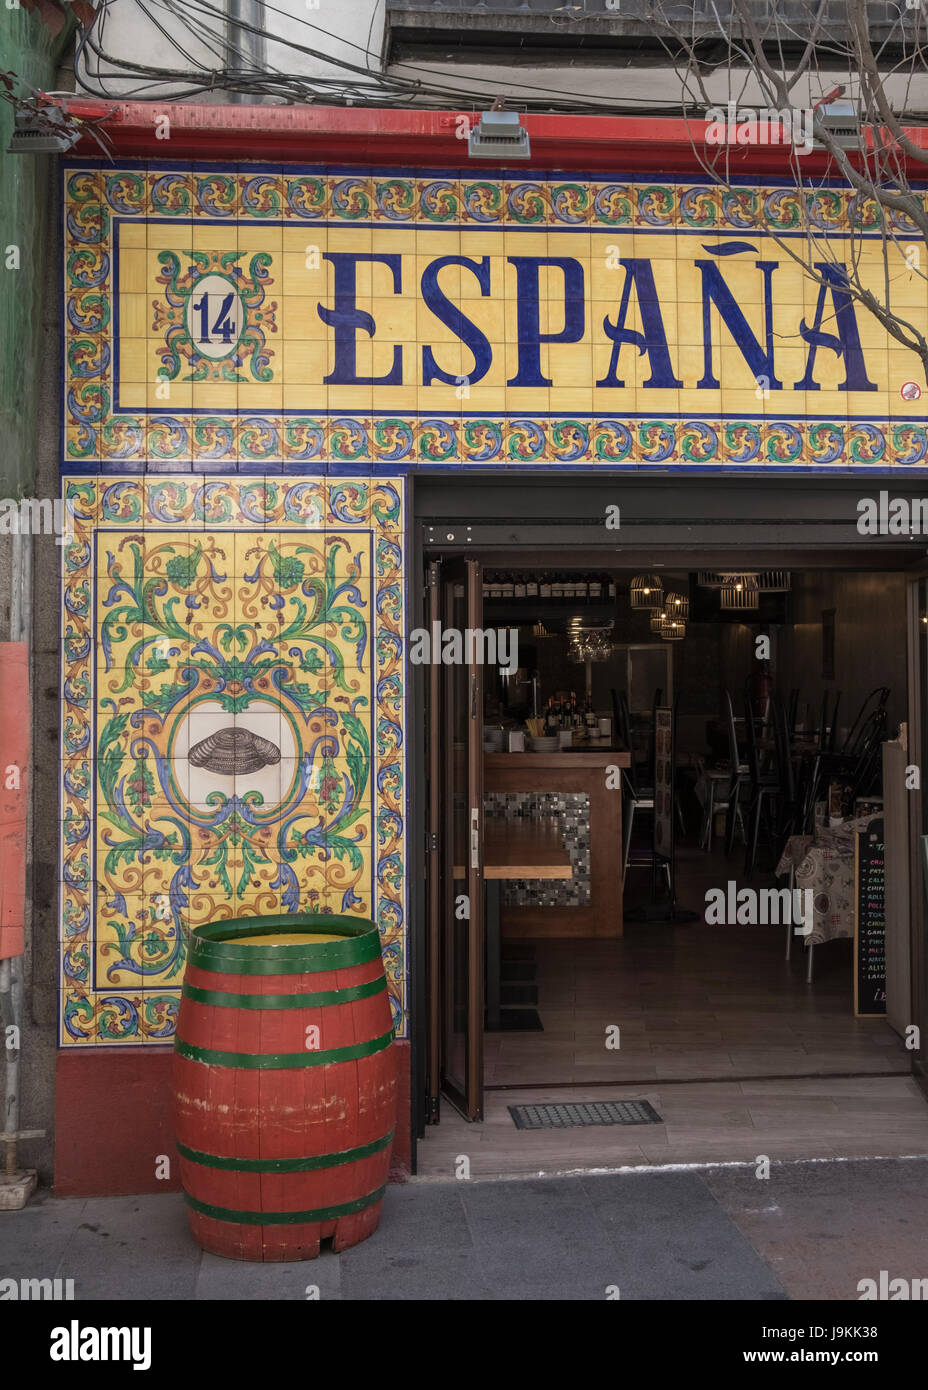 Hand painted decorative tiles used on the exterior of a Spanish restaurant, Madrid, Spain. - Stock Image